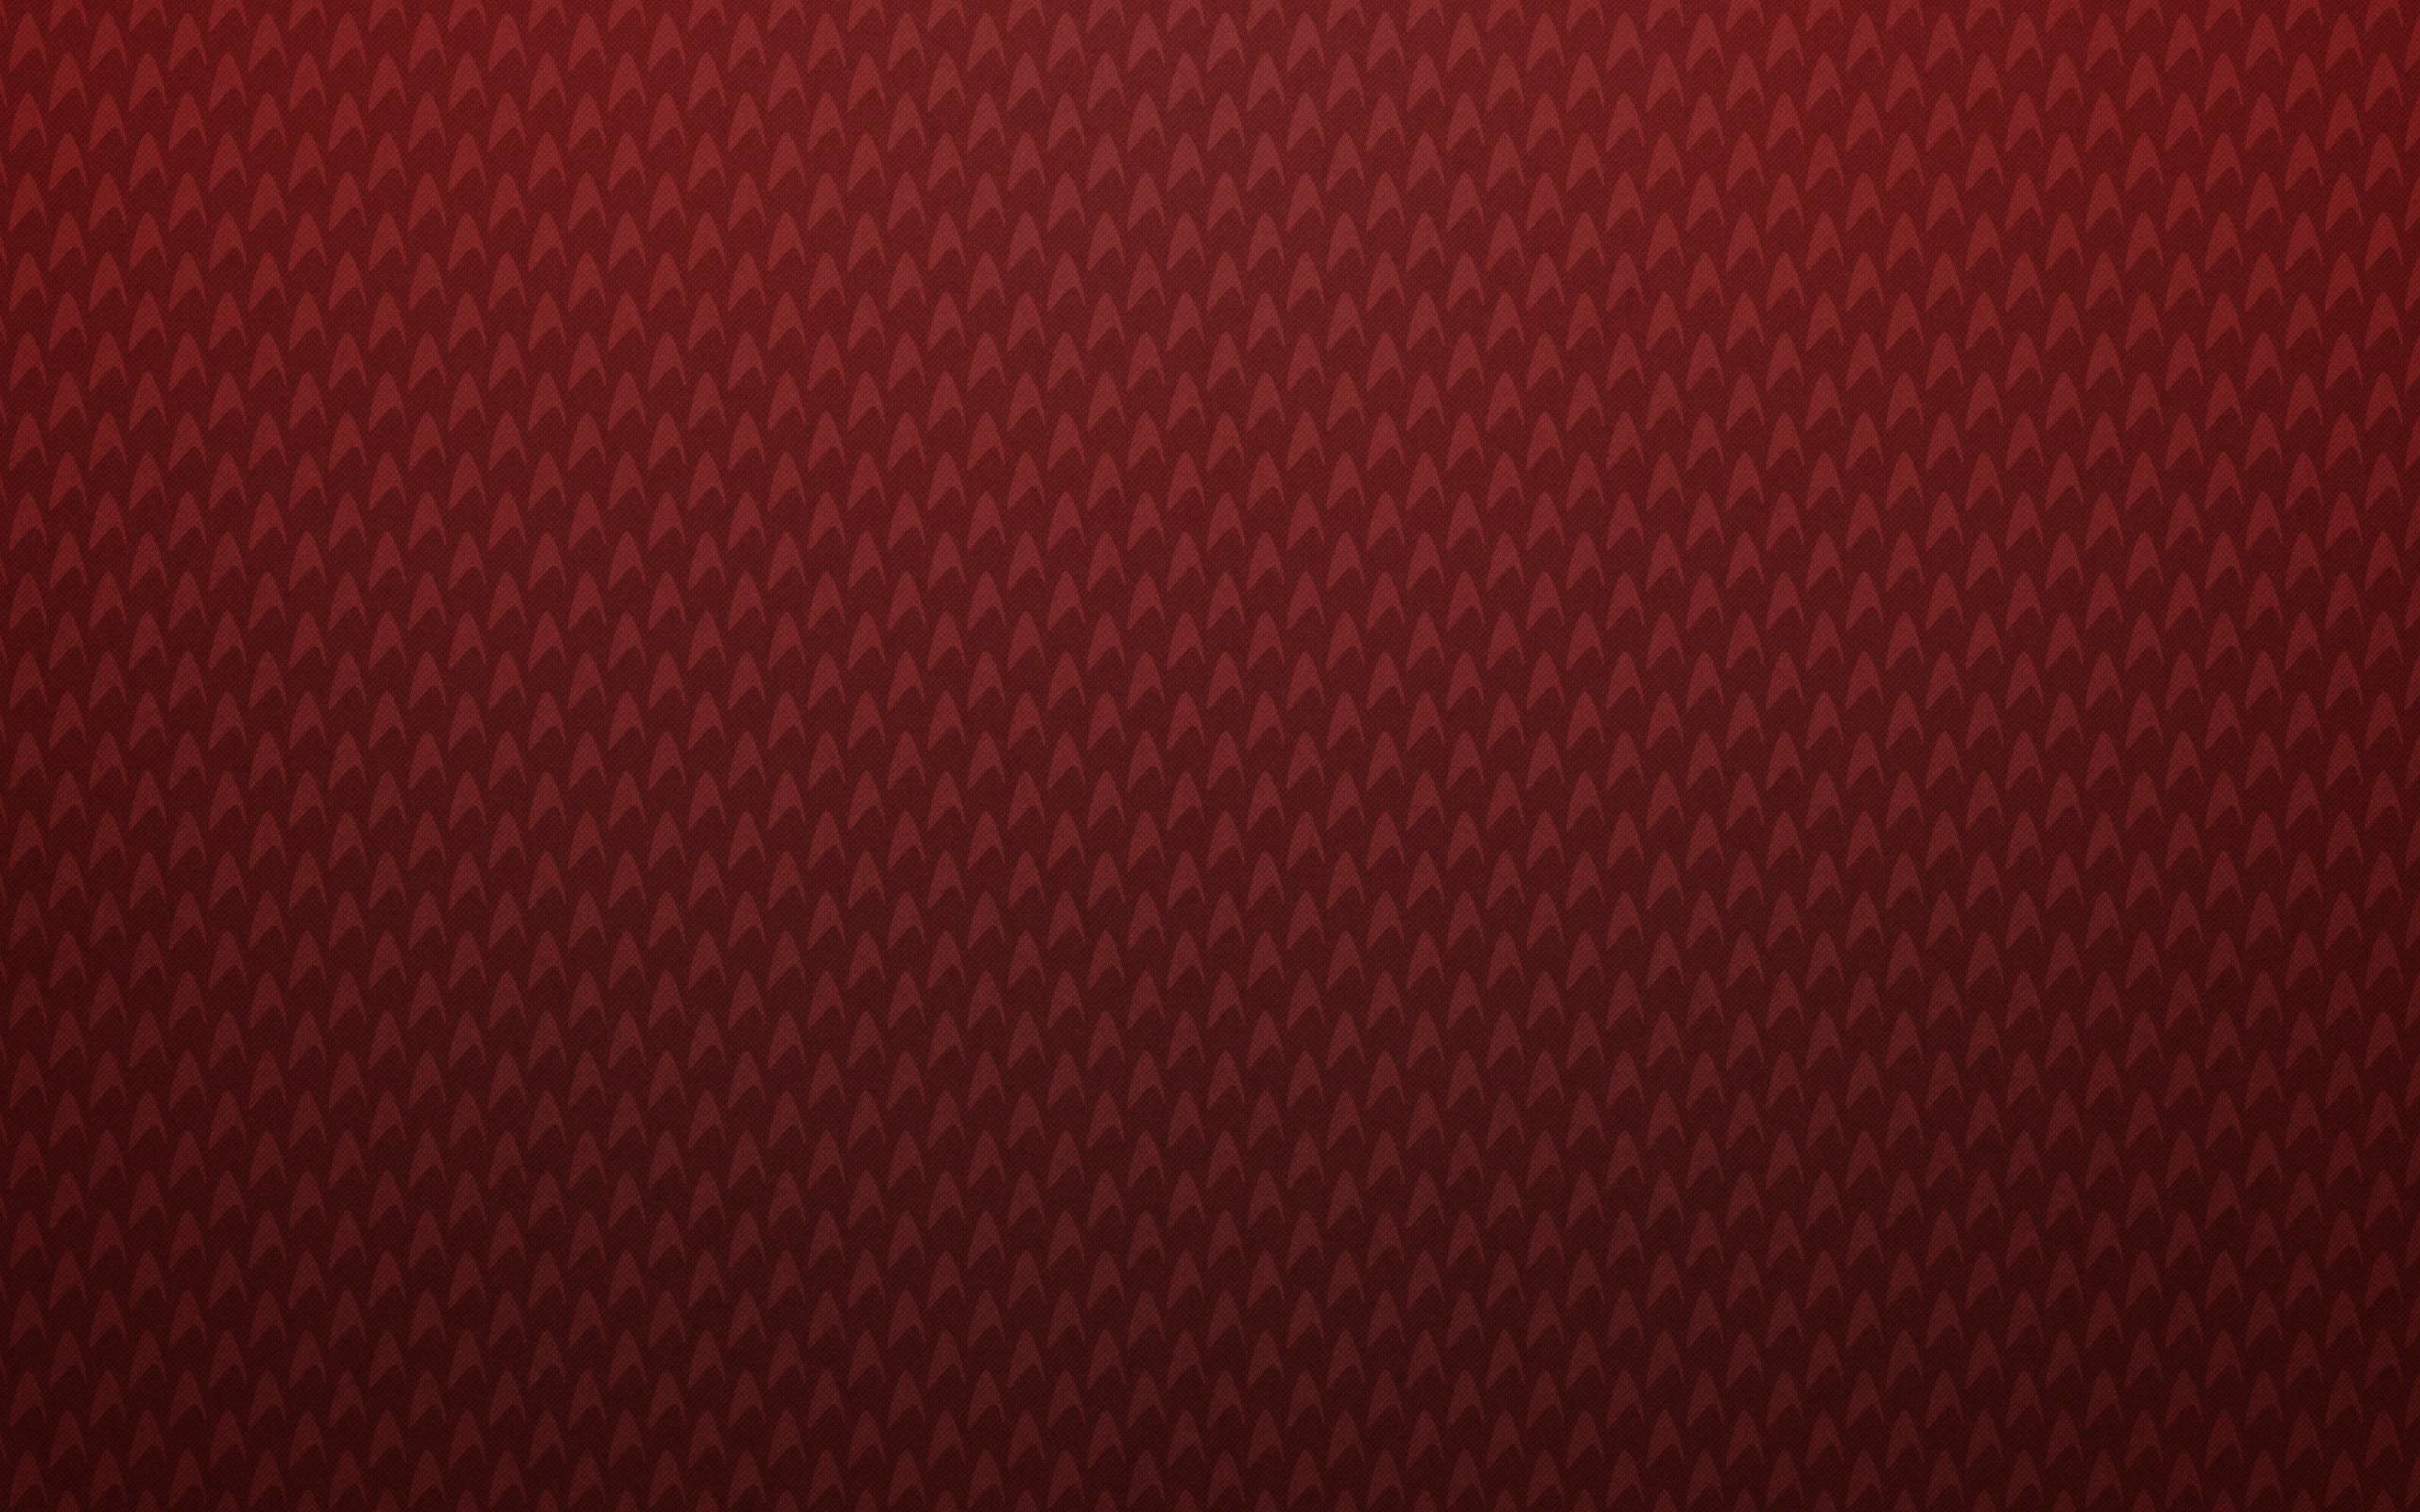 best-textured-background-32 Textured wallpaper HD free wallpapers .